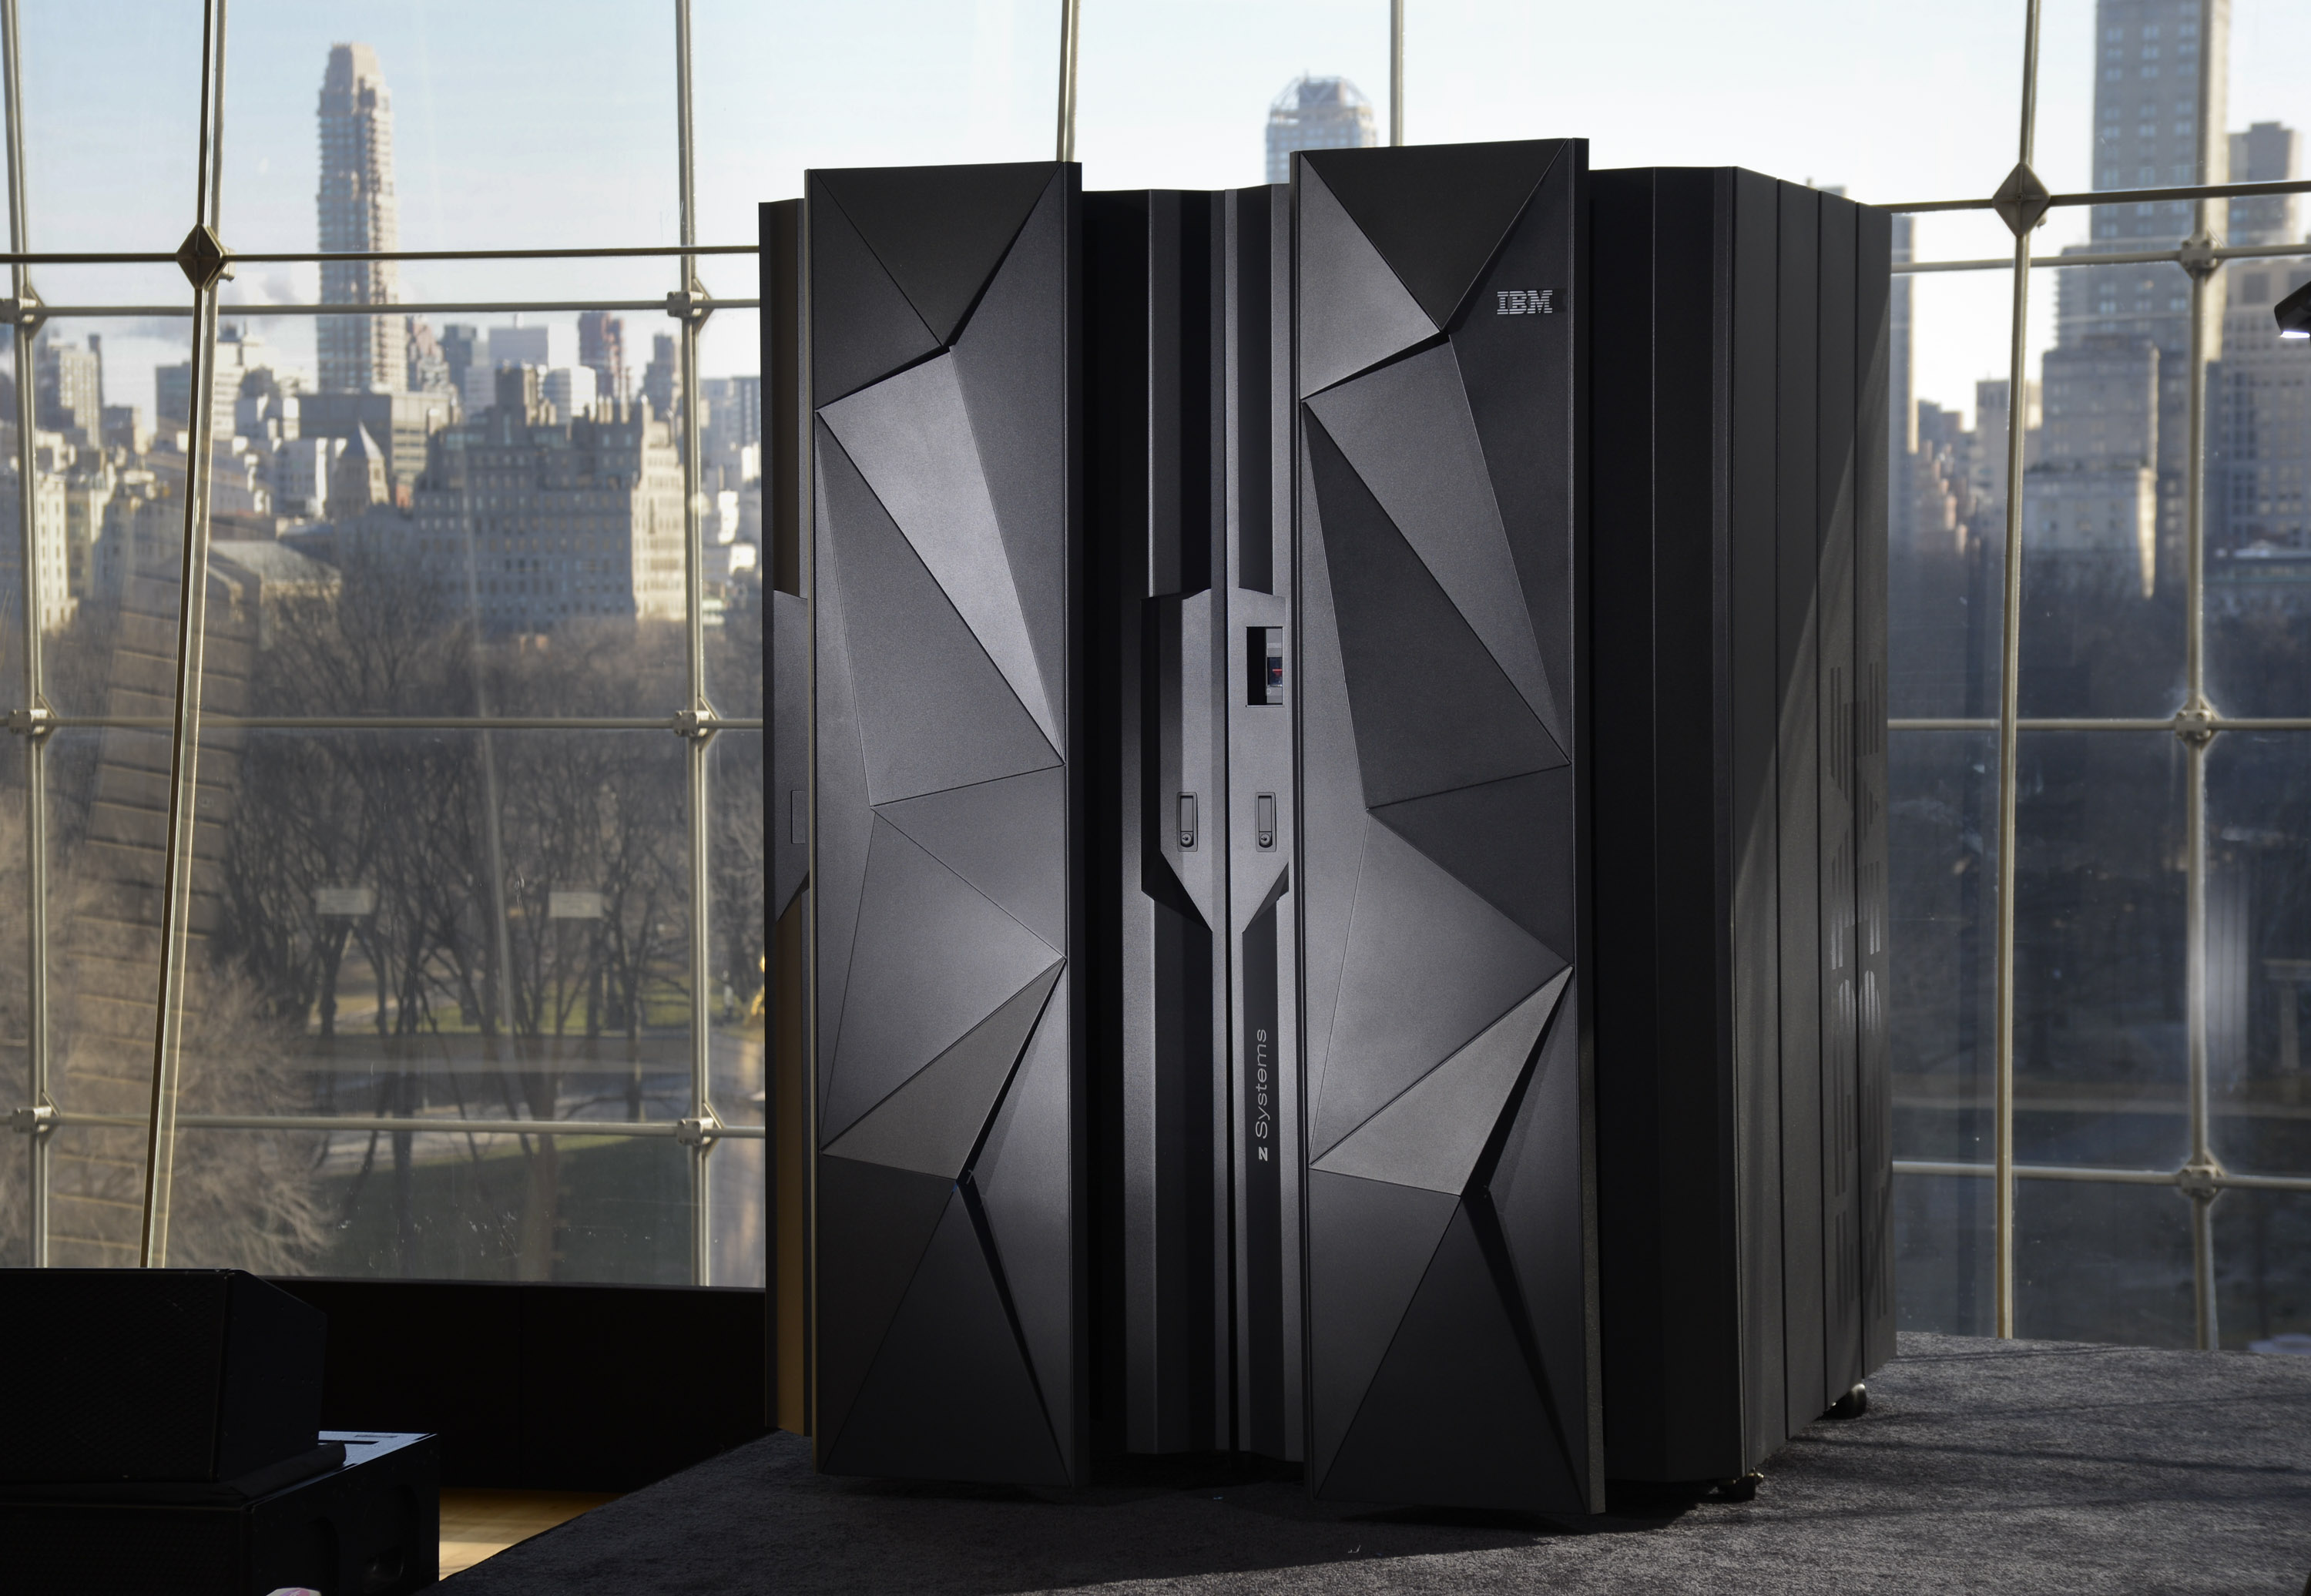 New York City -  Ross Mauri, manager IBM mainframe systems, poses with new System Z machine on Wednesday, January 14, 2015.  (PHOTO: Augusto F. Menezes/Feature Photo Service)